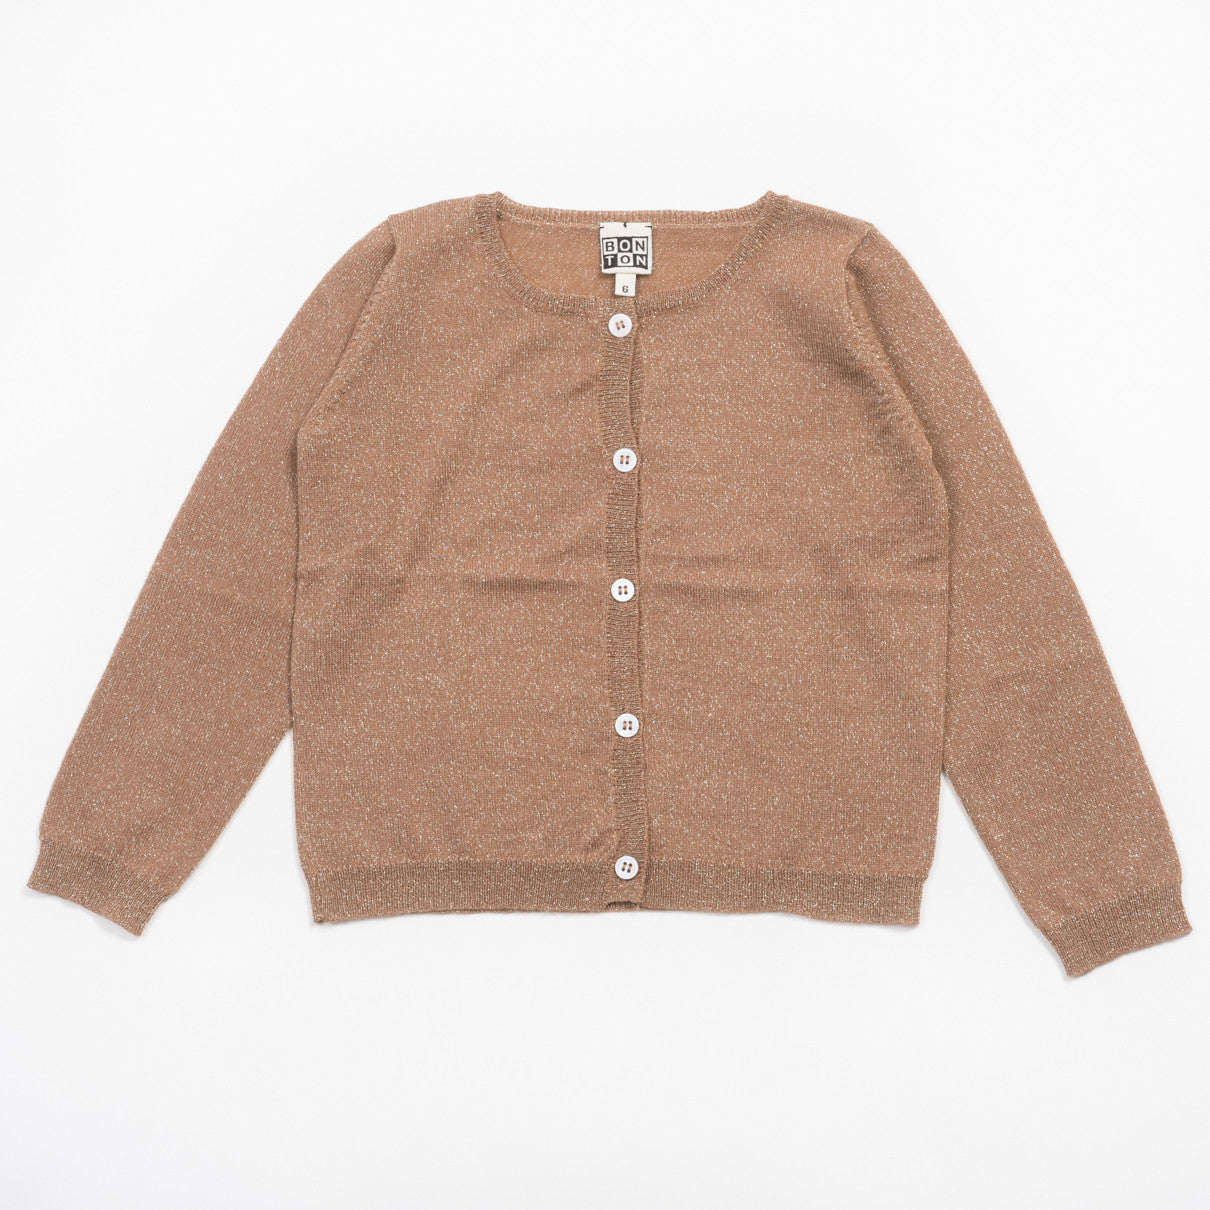 Bonton Brown Lurex Cardigan - Ladida